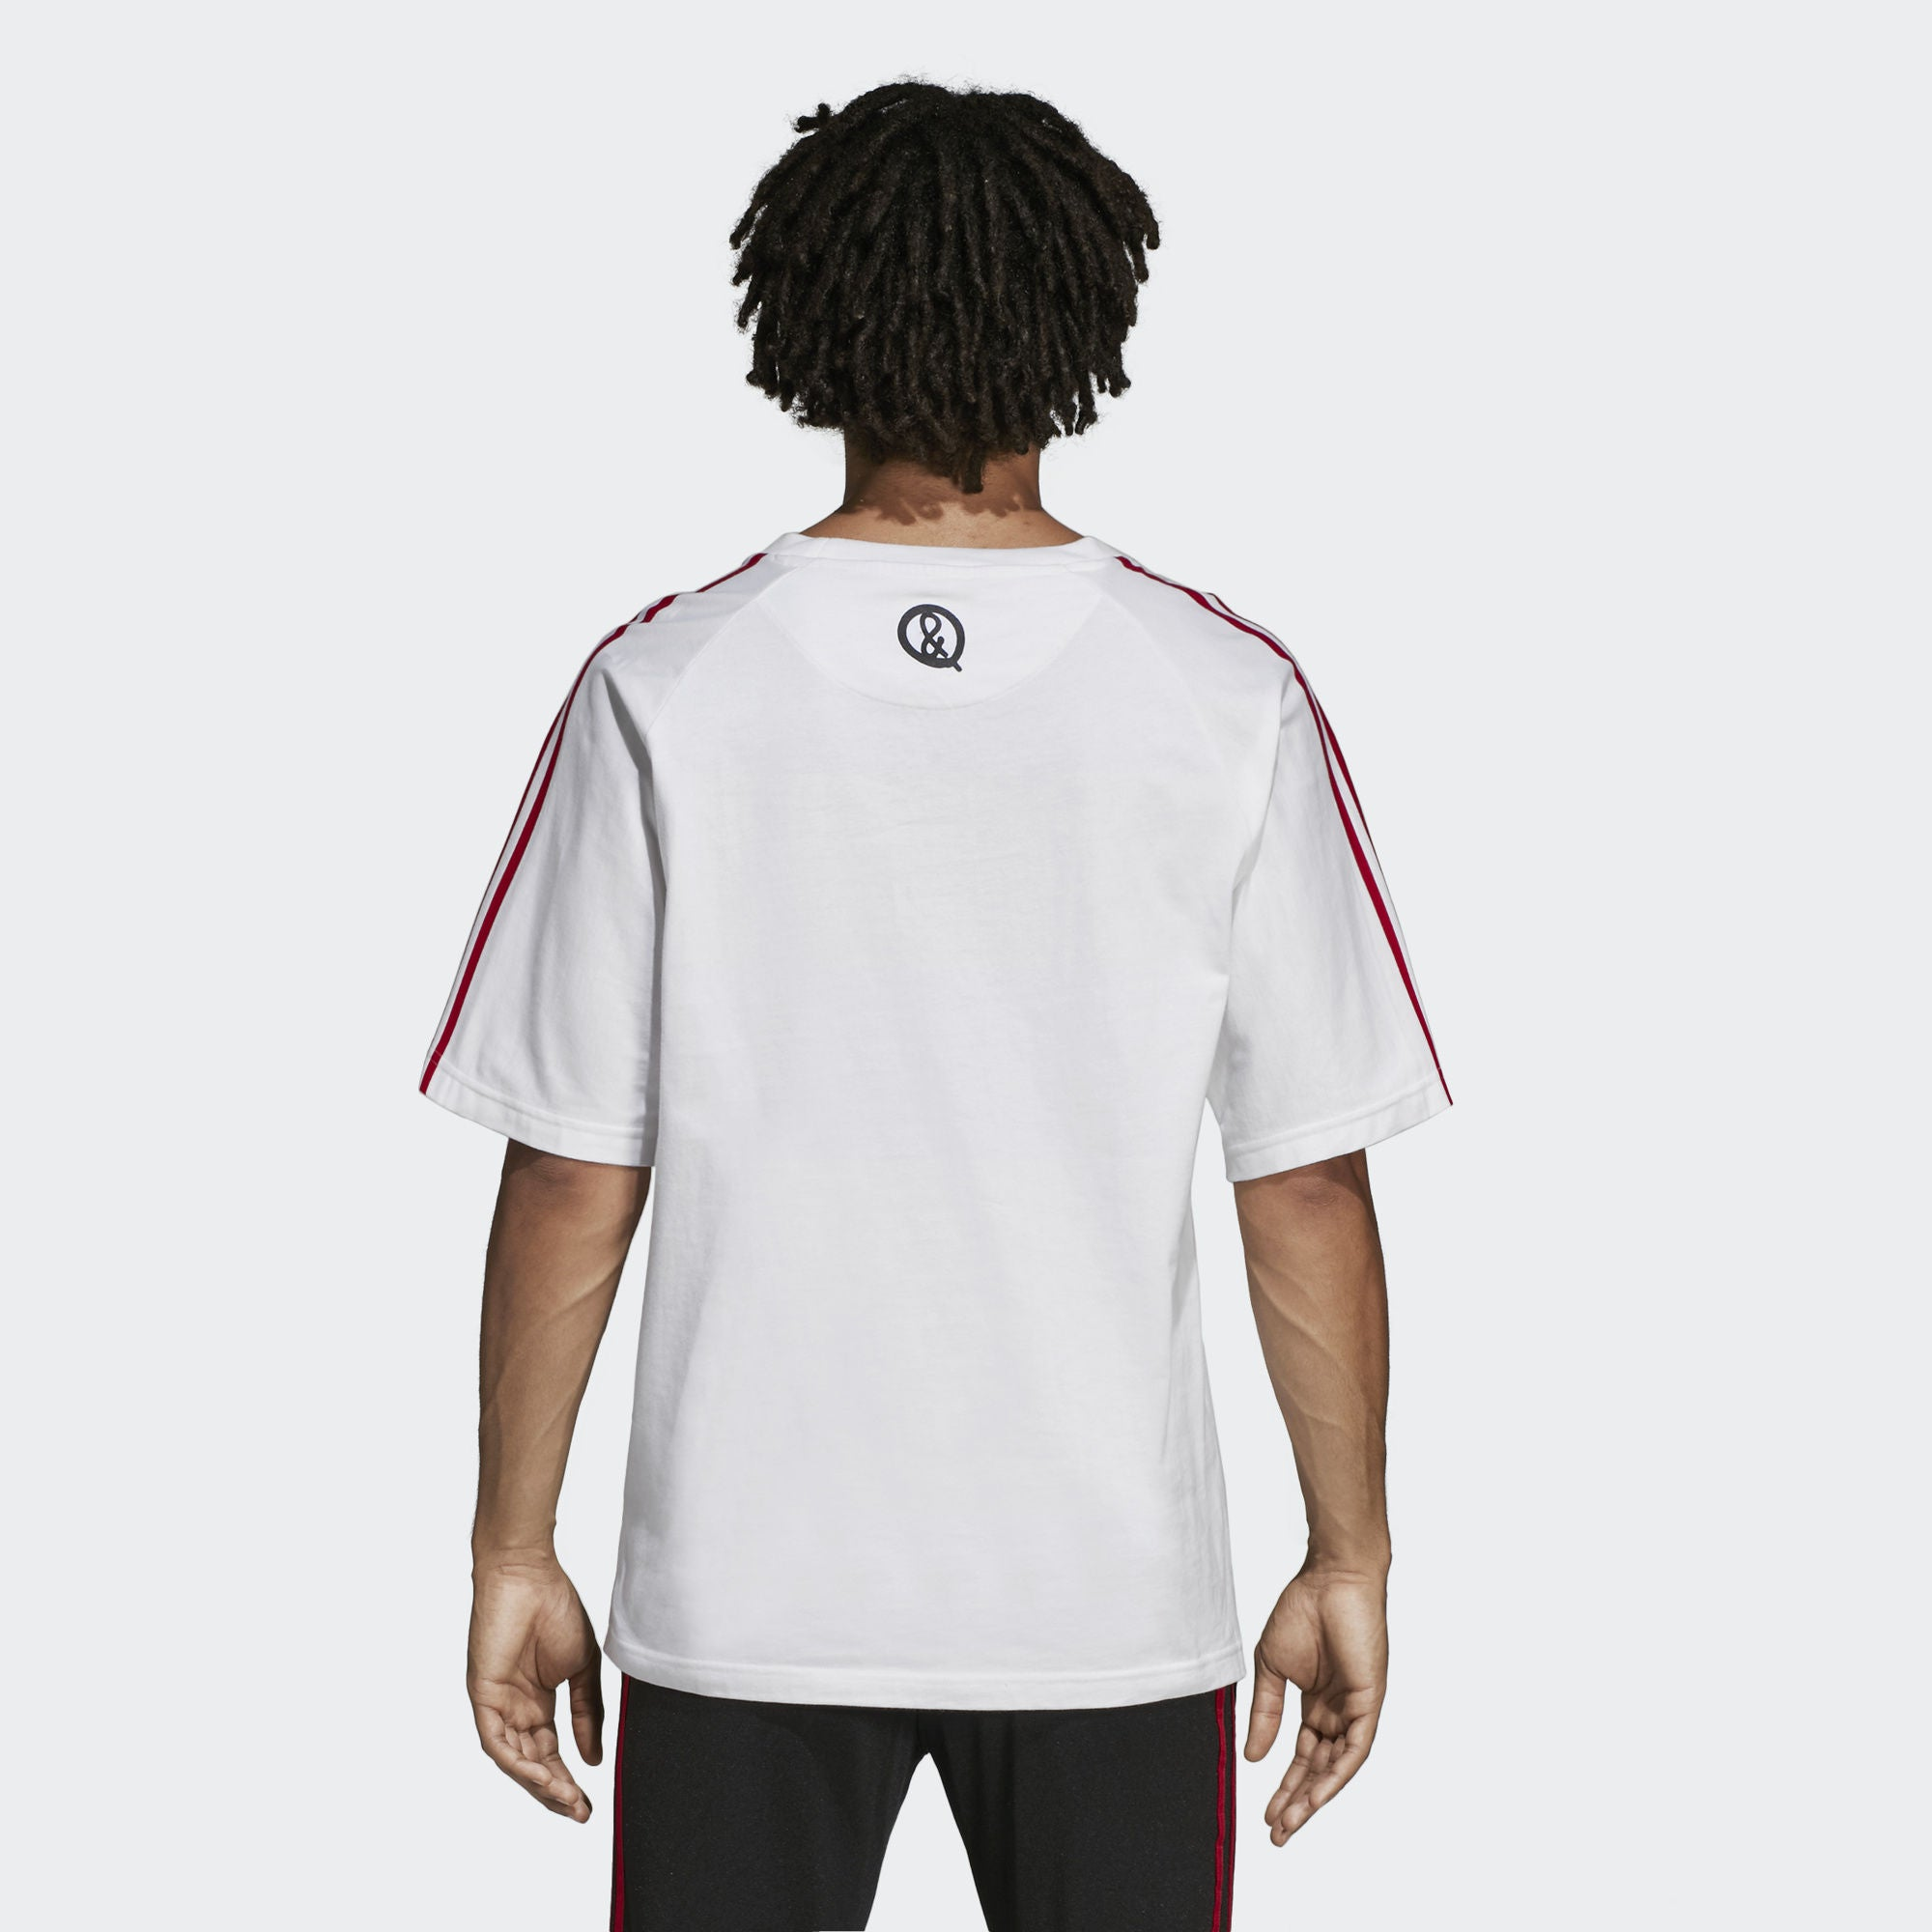 UA & SONS GRAPHIC TEE - WHITE